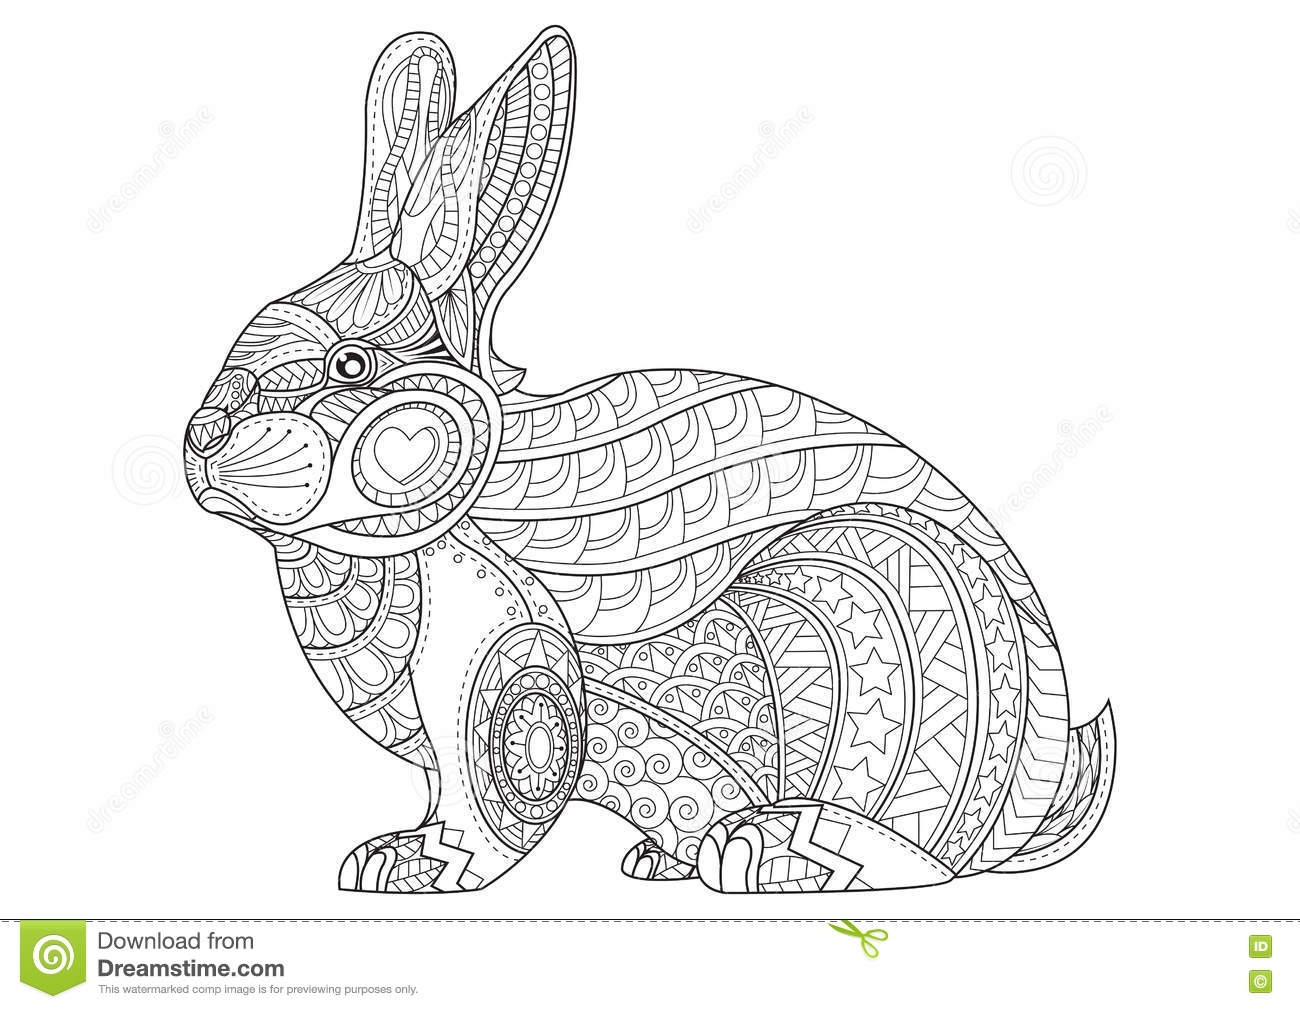 Christmas Ornament Coloring Pages For Adults Coloring Pages